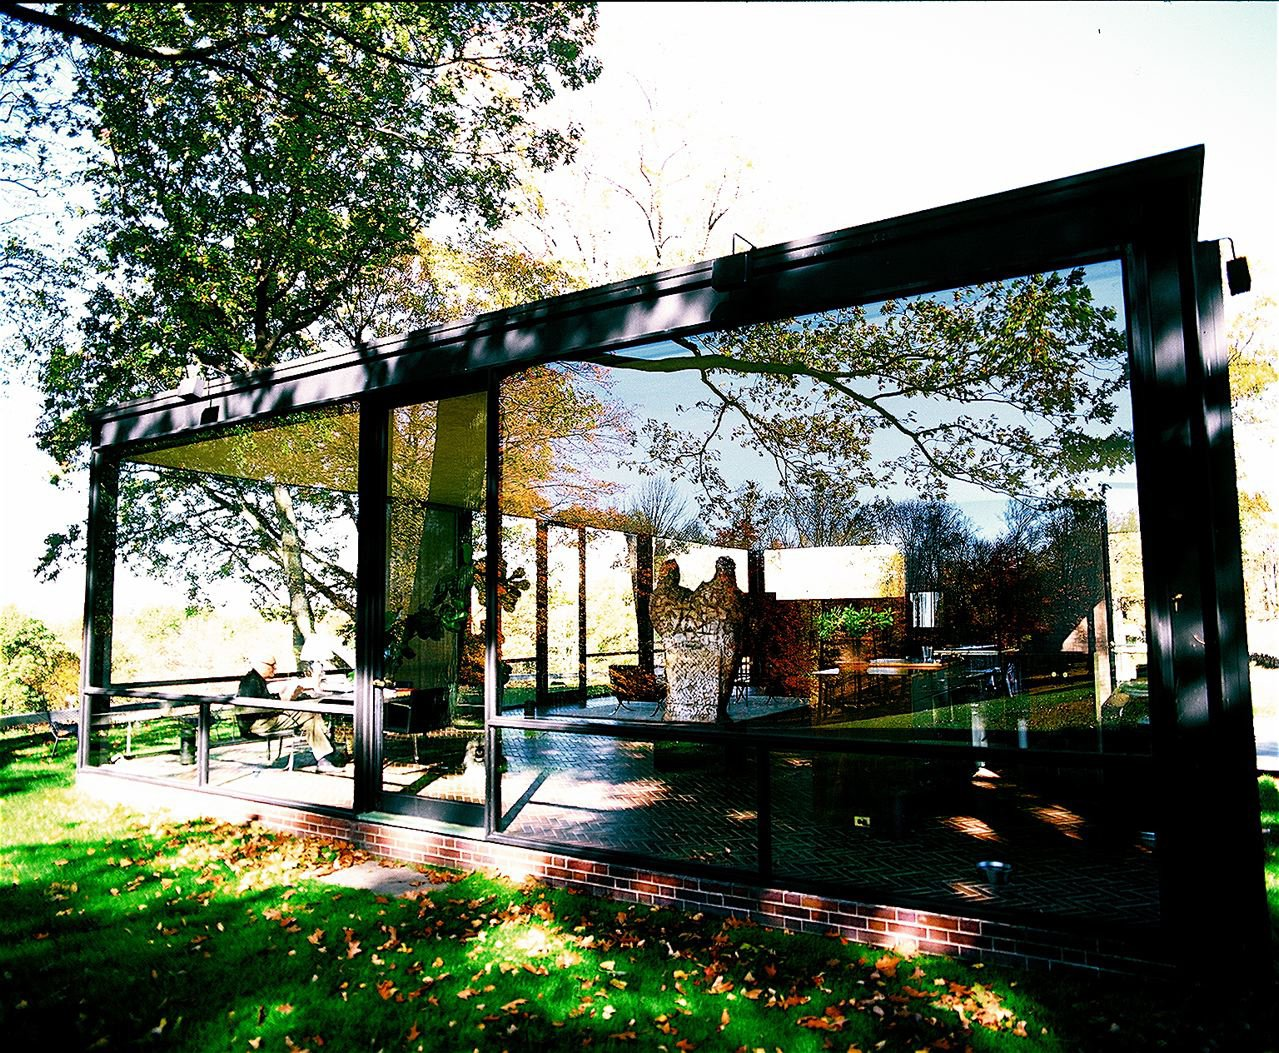 Philip Johnson in his Glass House. Philip was the first recipient of the Pritzker Prize award. I think it is the only photograph in which you see Philip in the house and the house in its entirety.  Richard Schulman's Photographs by Bradford Shellhammer from Richard Schulman